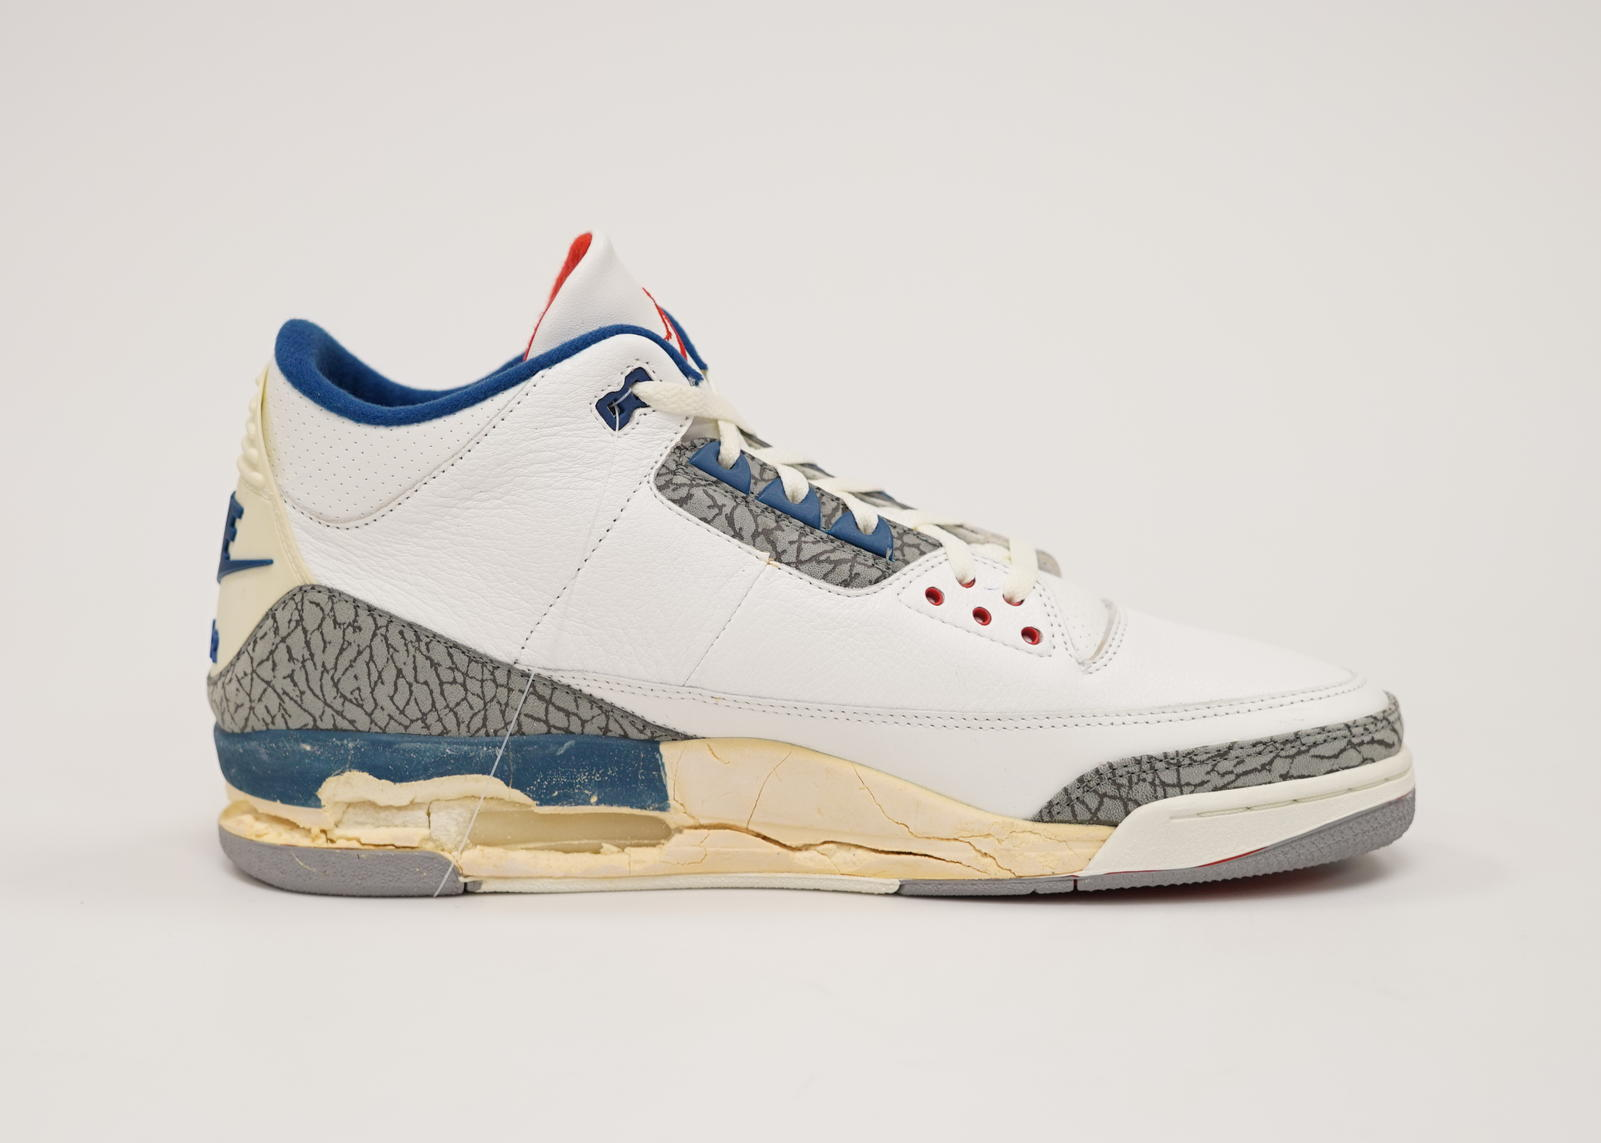 designer fashion 4d070 b5617 Original Air Jordan 3